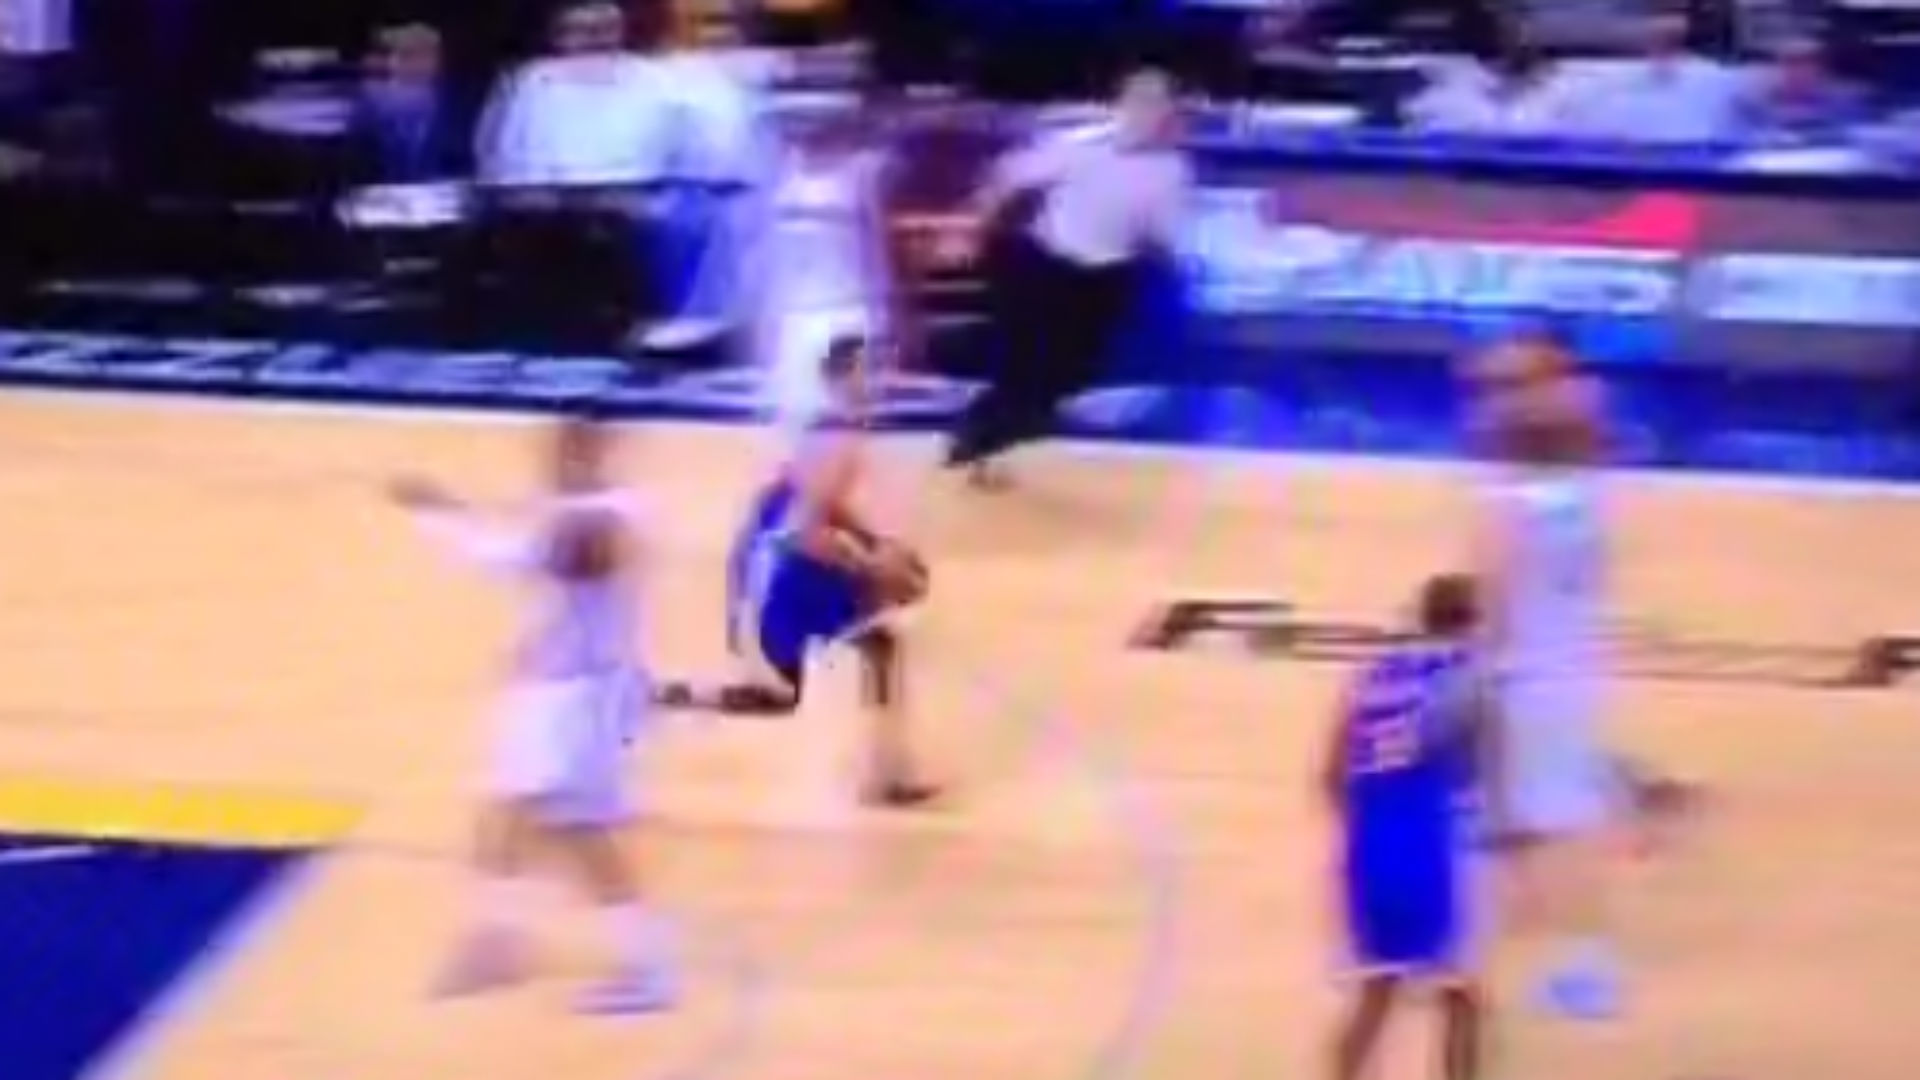 Stephen curry drains ridiculously long buzzer beater